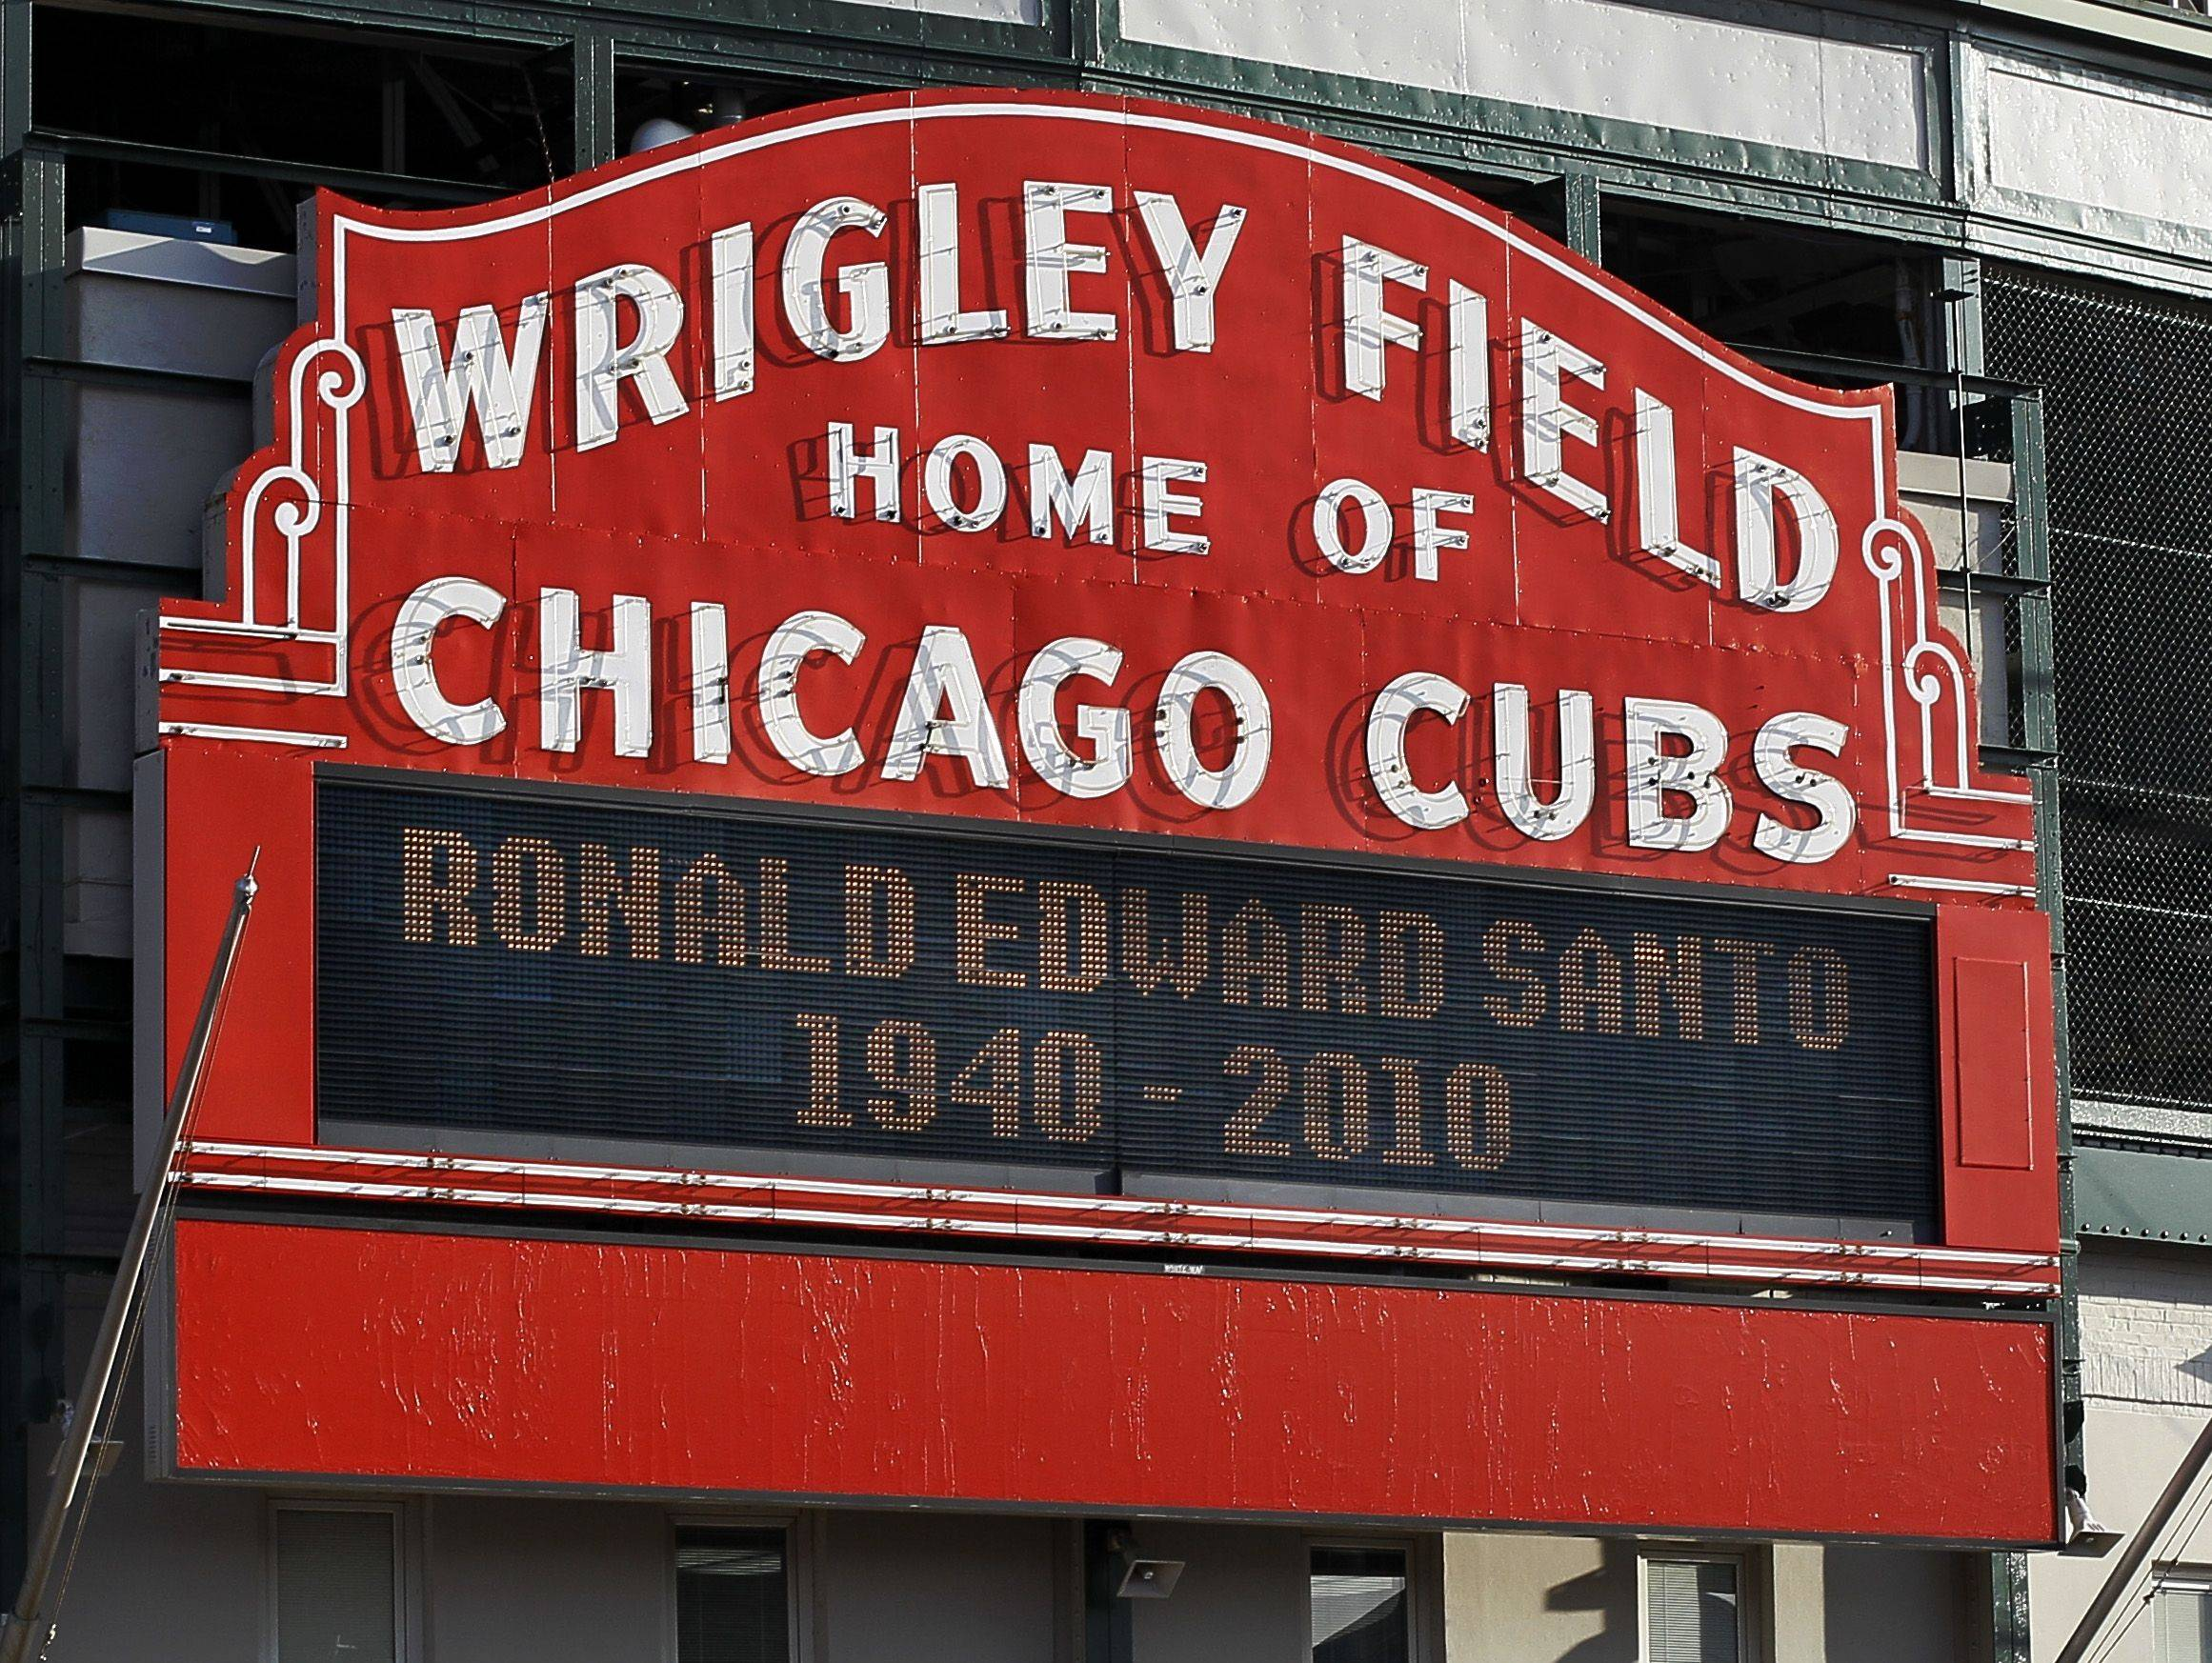 The Wrigley Field marquee pays tribute to Cubs' legendary third baseman Ron Santo.